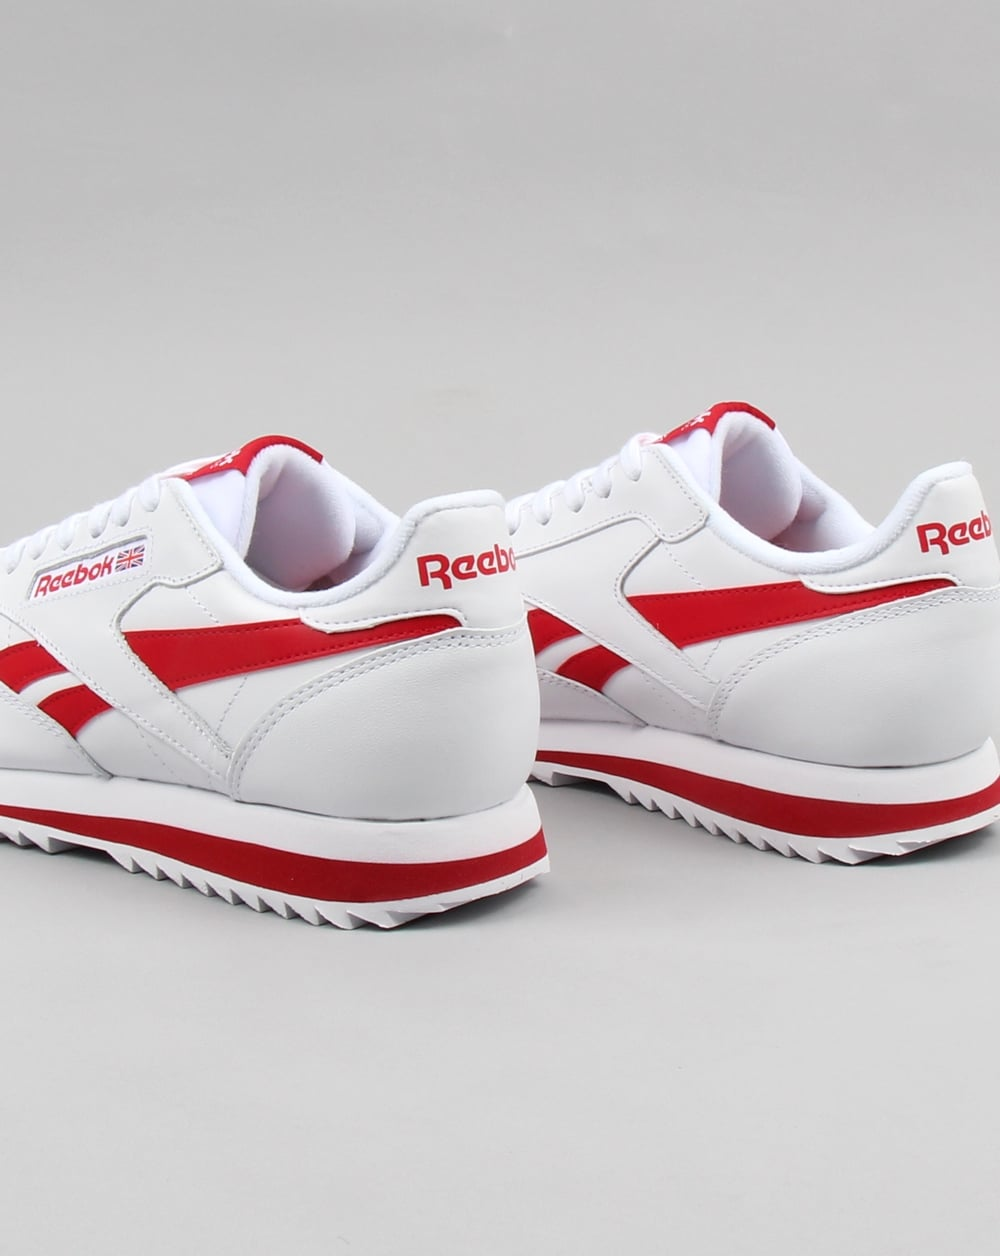 8154a895e4f54 Reebok CL Ripple Leather Trainers White red